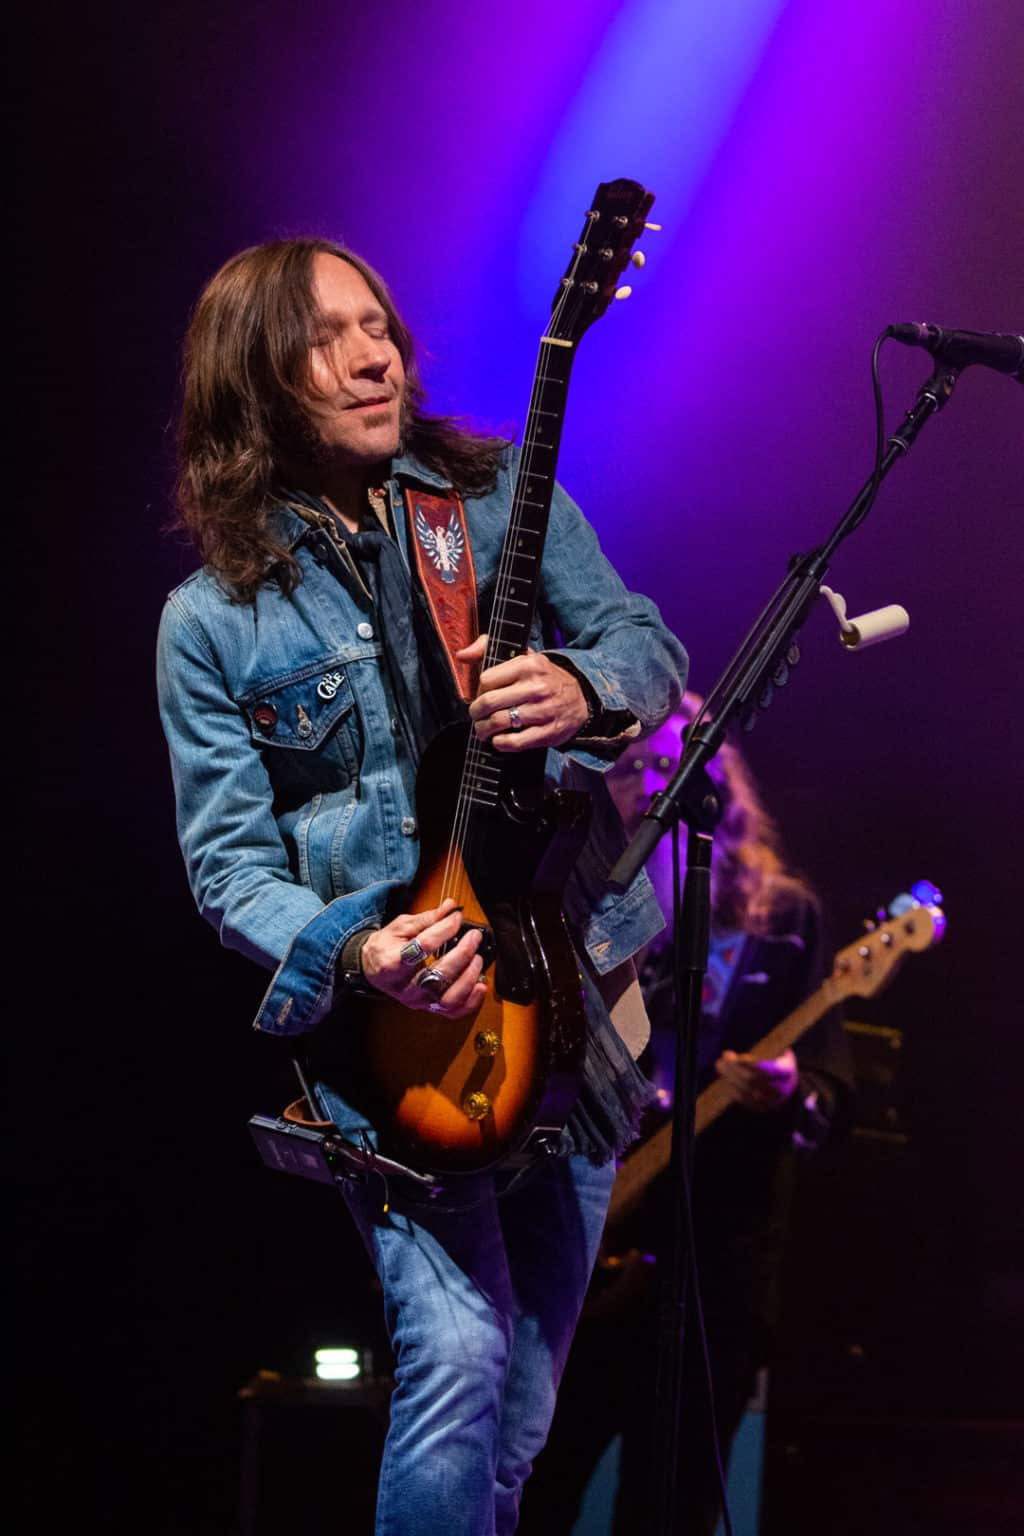 Medium shot of Blackberry Smoke smiling with eyes closed while playing an electric guitar with purple lights shining in the background